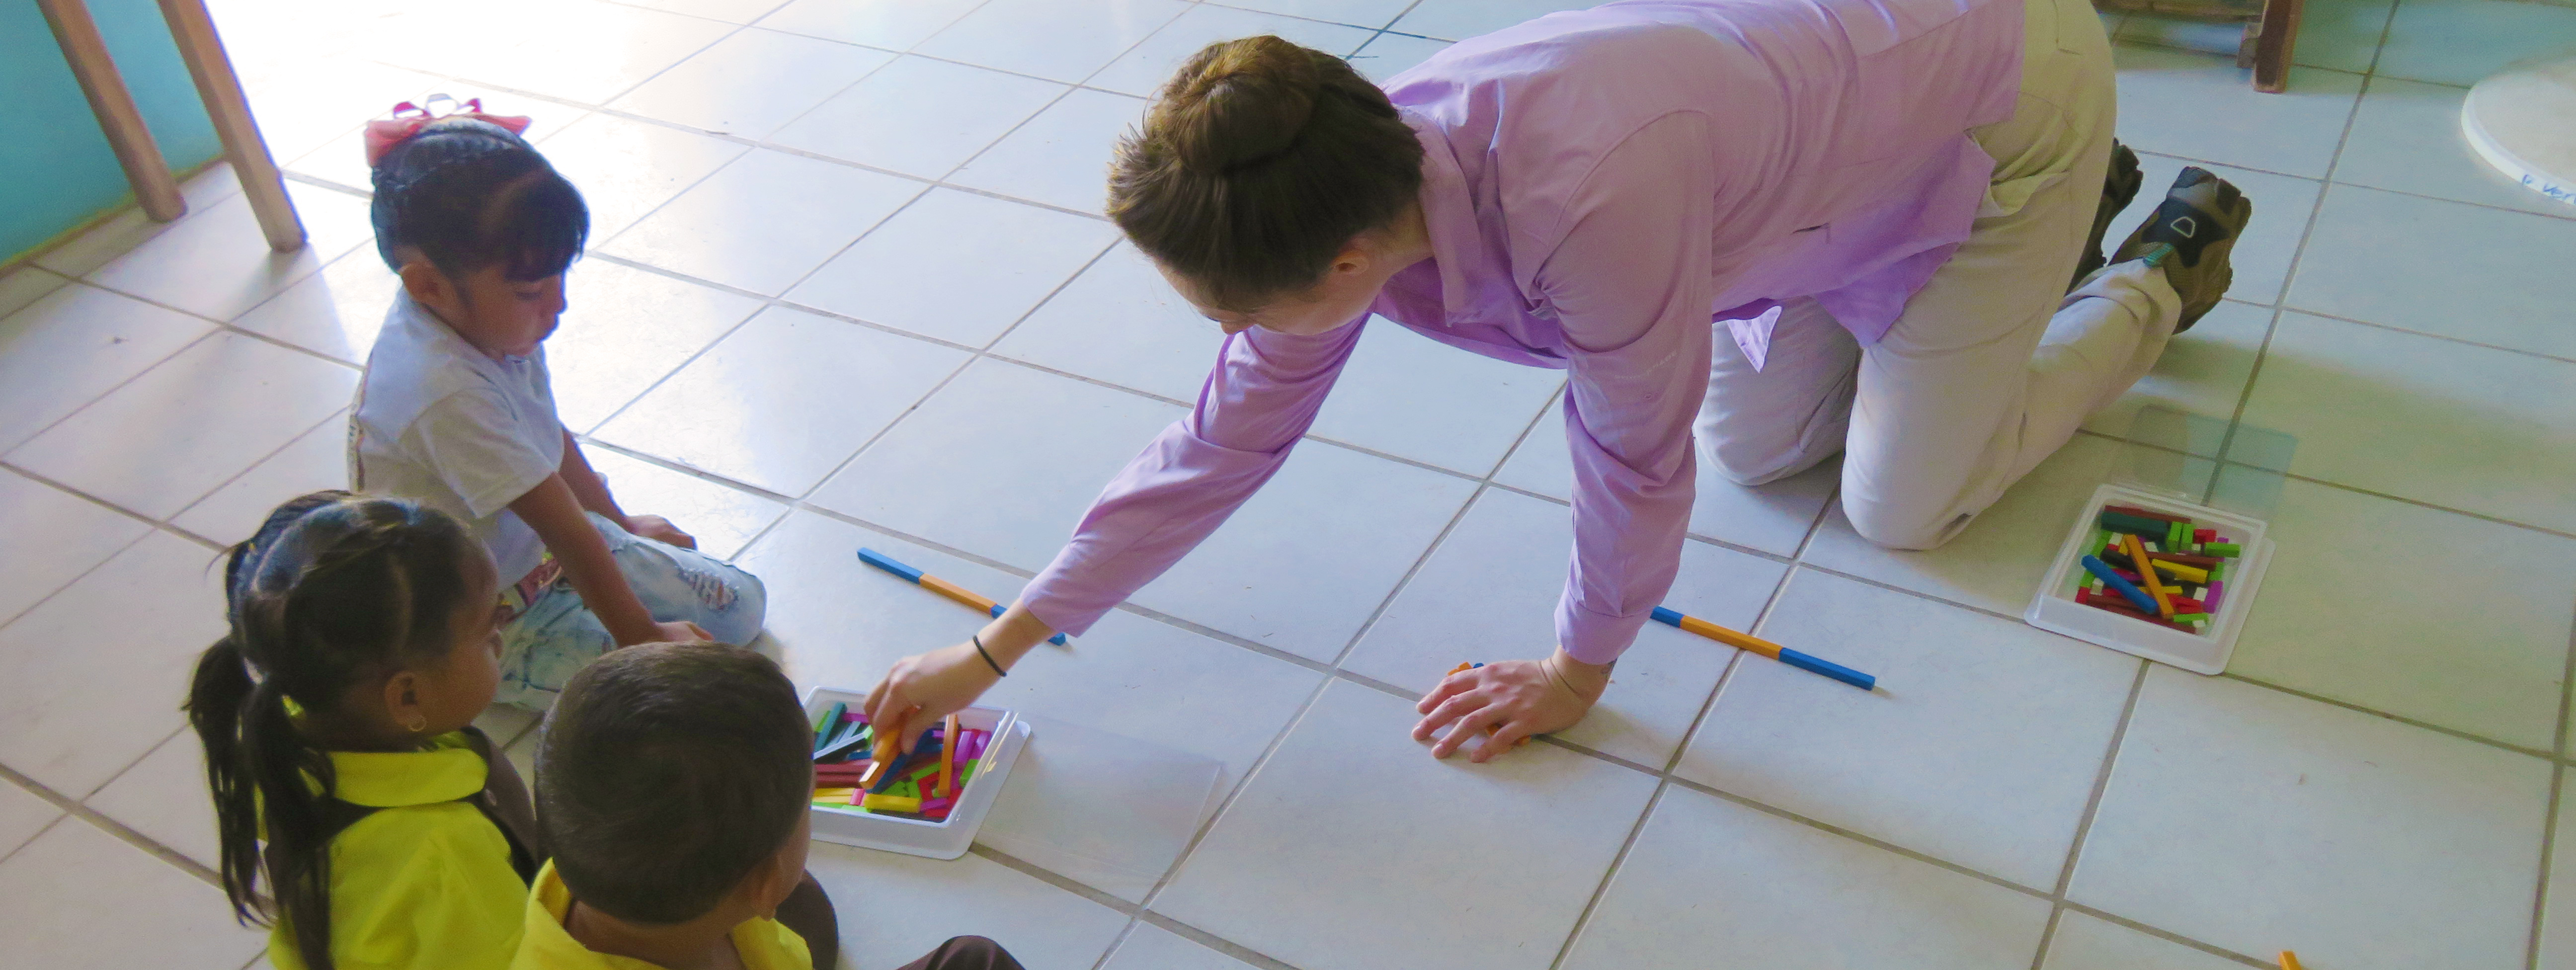 A young women with her hair pulled up in a bun is on her hands and knees on a while tile floor with three children. She is pulling colorful sticks from a plastic container on the floor.